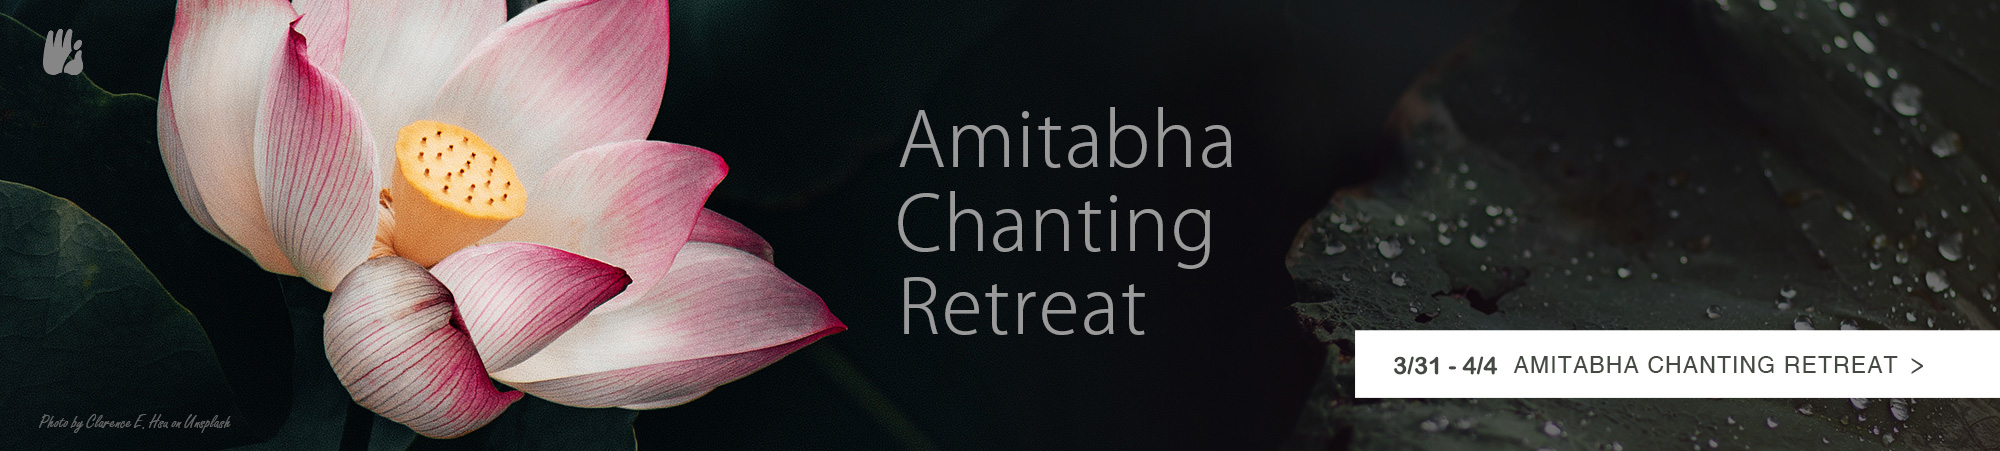 5-DAY AMITABHA CHANTING RETREAT